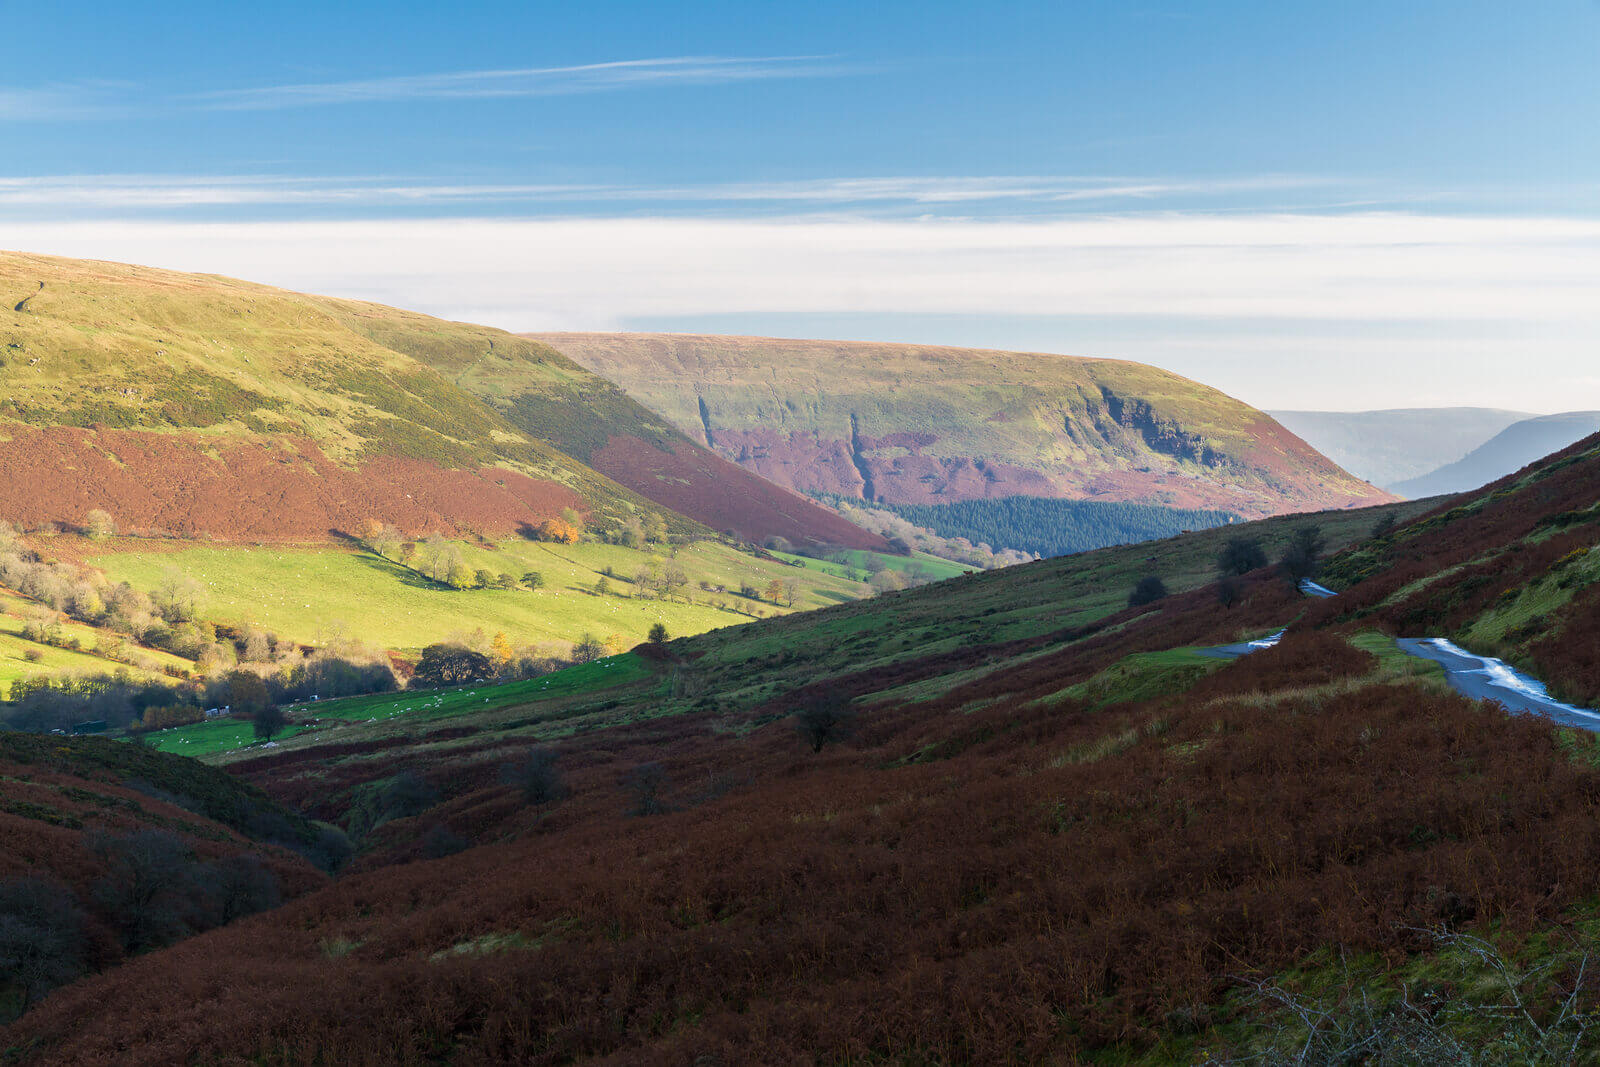 A4069 road in Wales, stunning view of green mountainside on sunny day